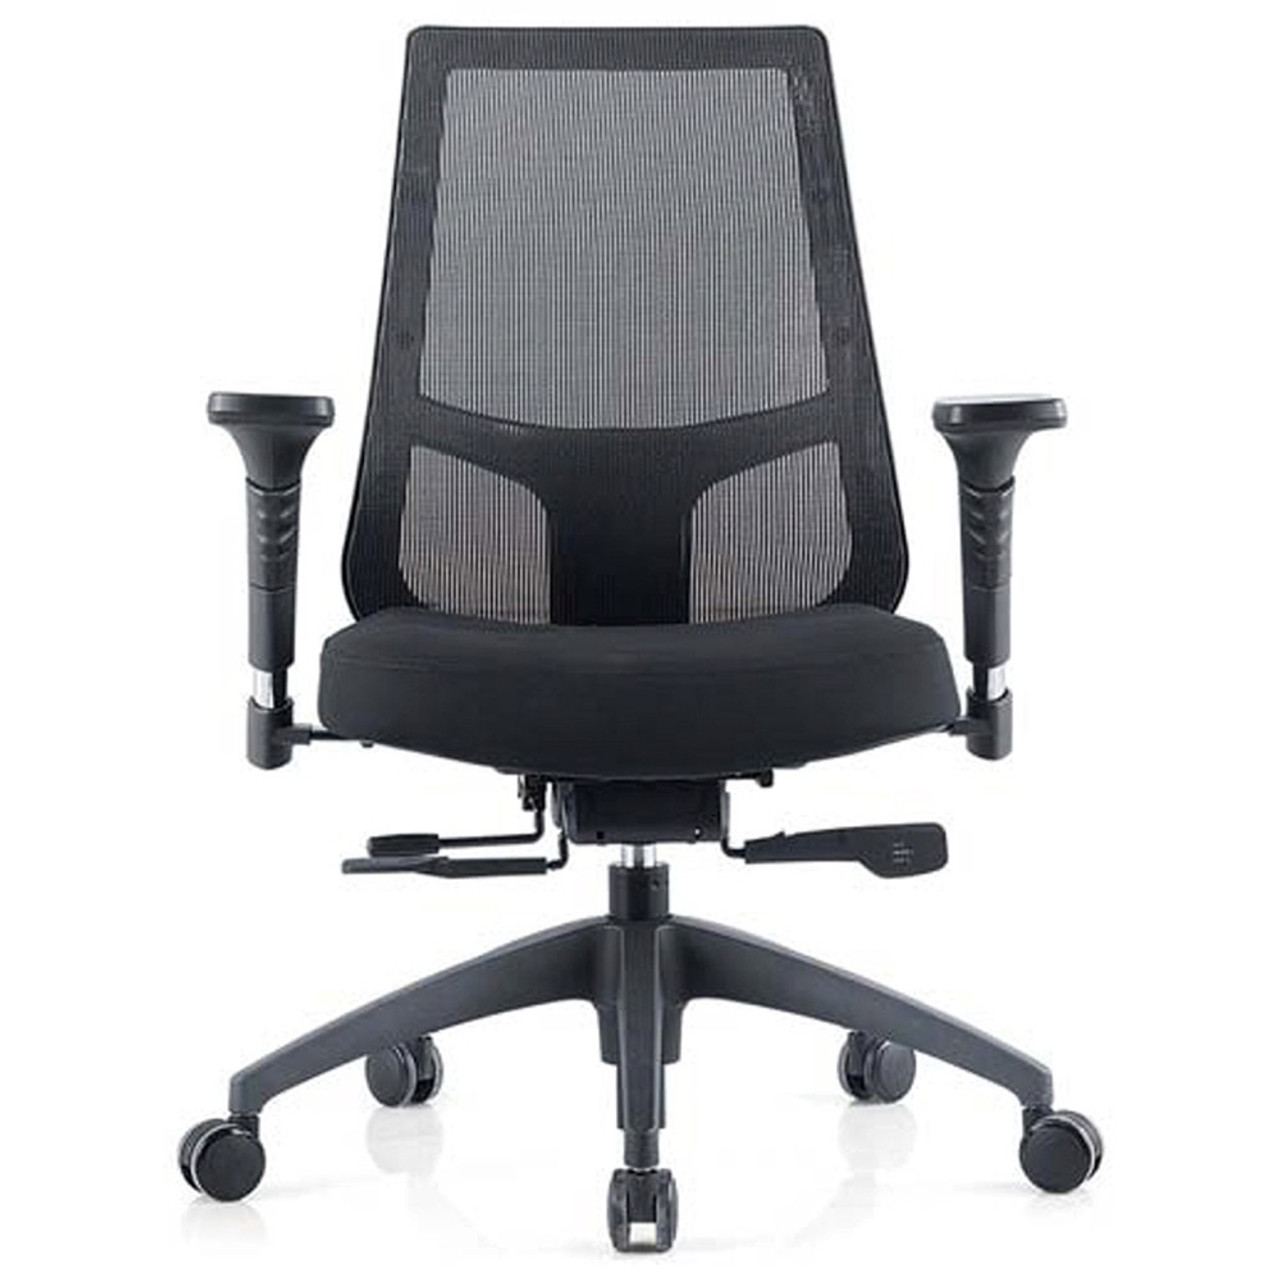 Inspire Mesh Back Office Chair Black Fabric Seat Synchron Adjustable Arms Seat Slider